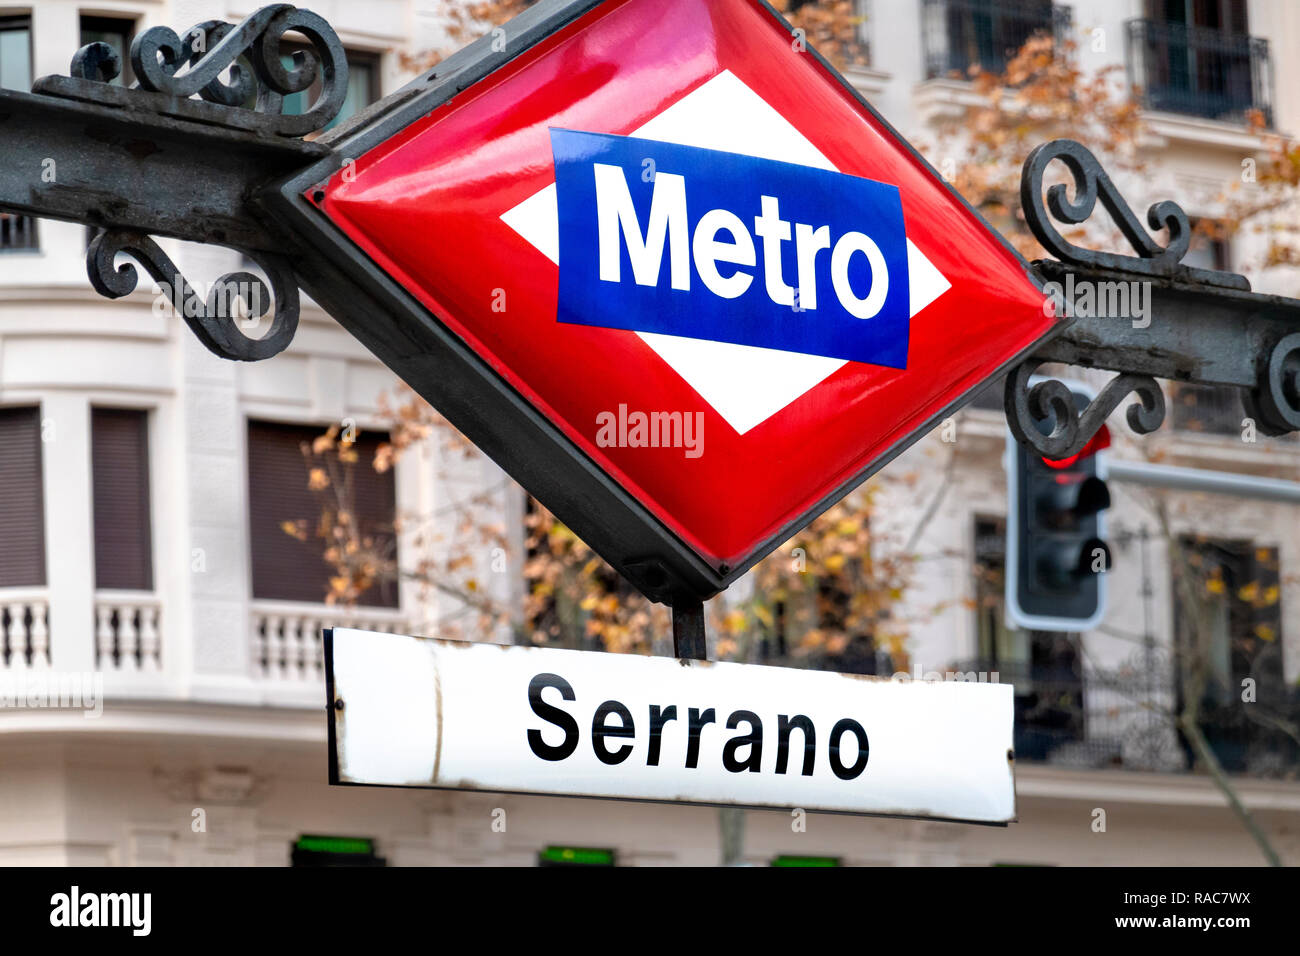 Madrid Calle de Serrano Metro station sign - Stock Image